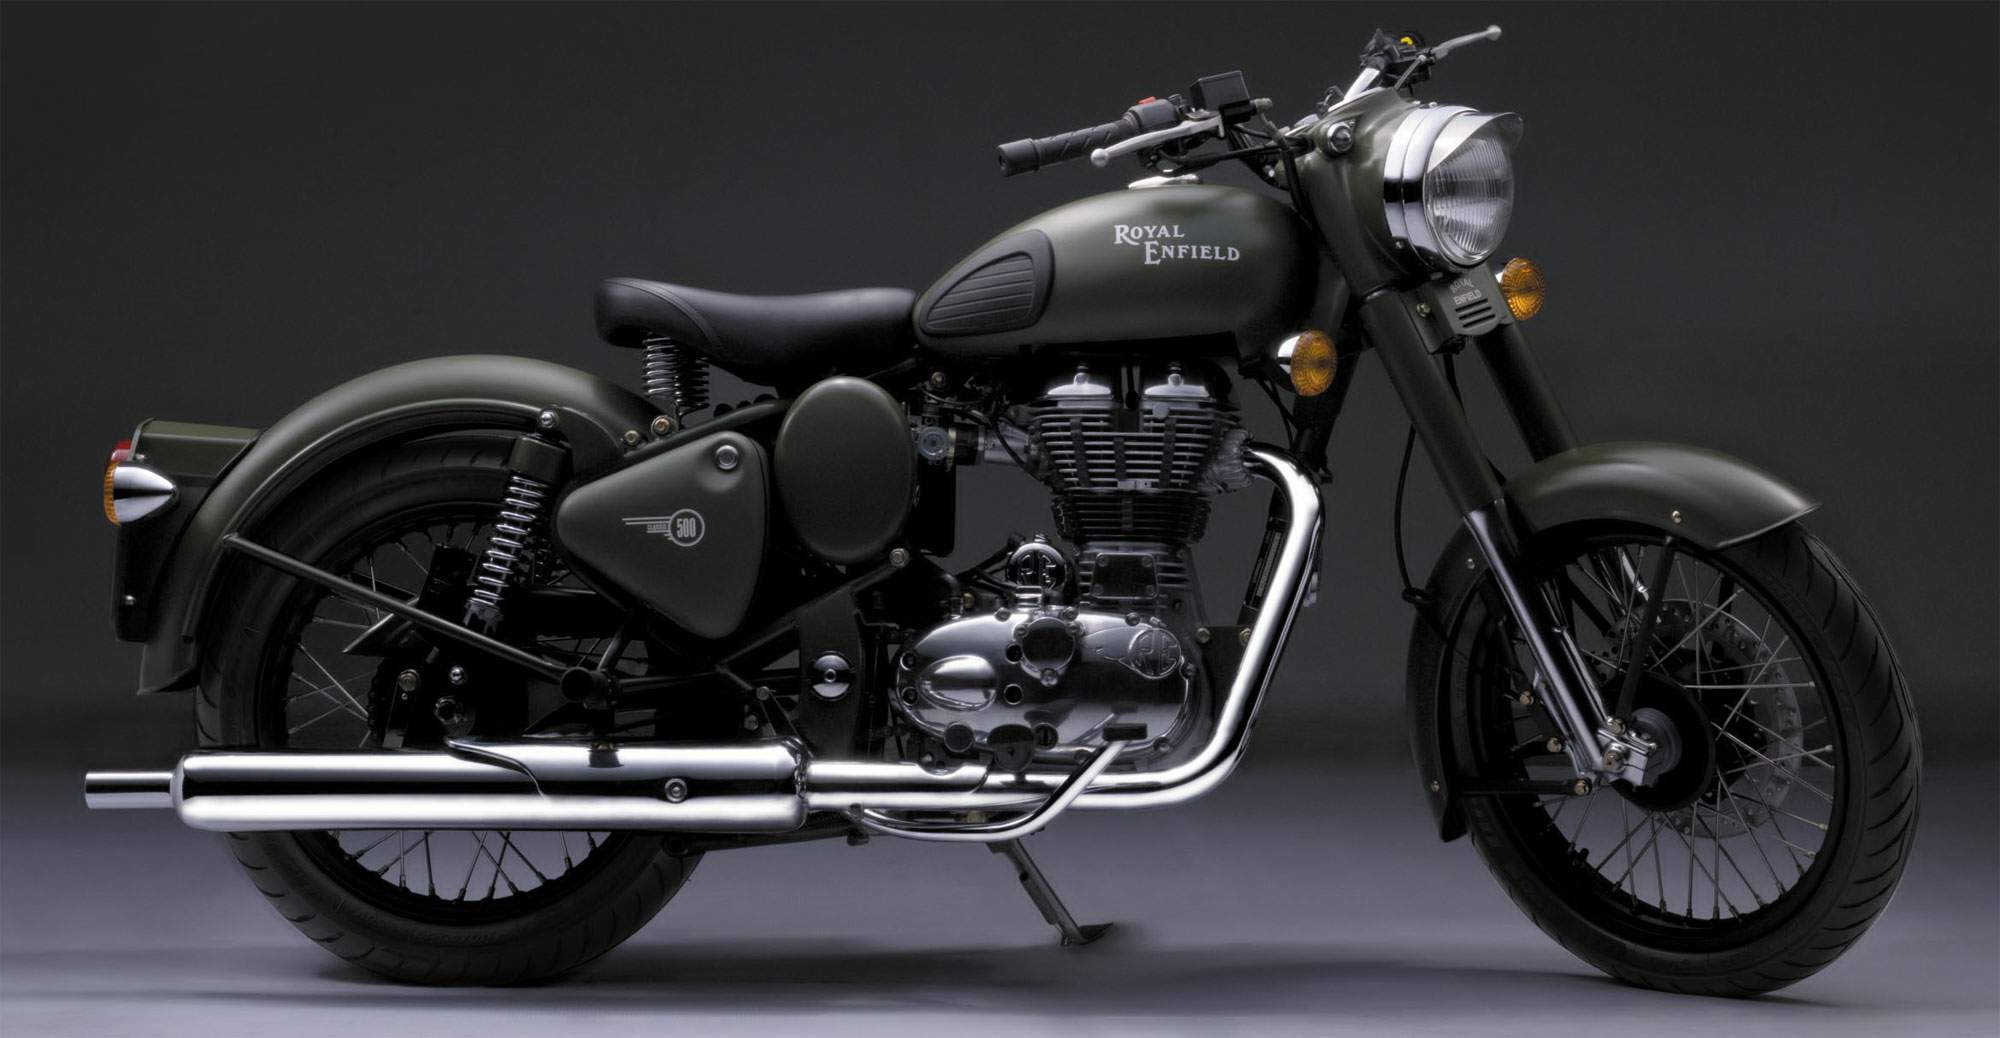 Royal Enfield Bullet 500 Army 1997 images #158650